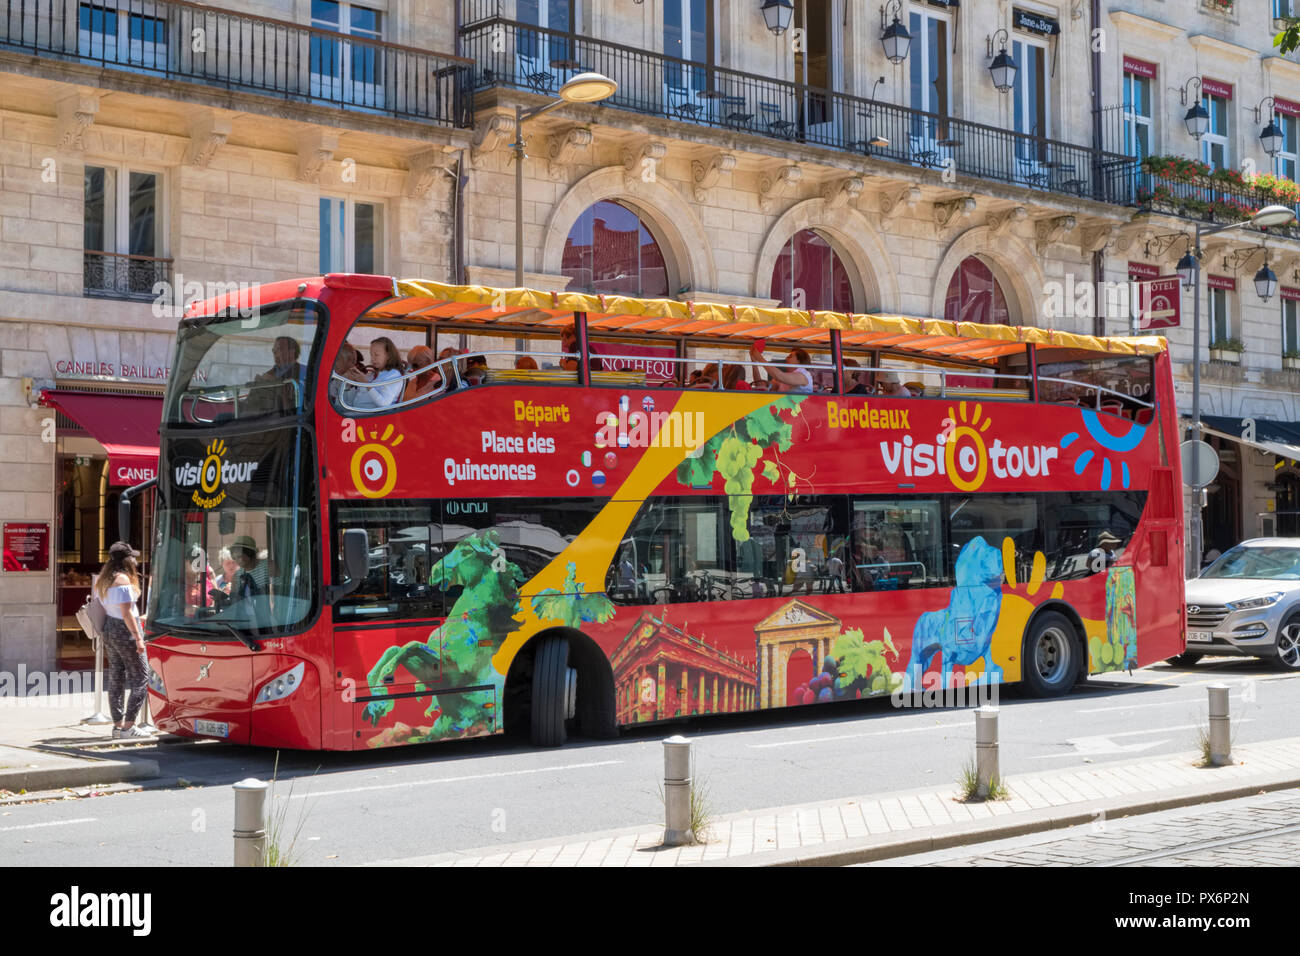 Touristen Sightseeing Bus in Bordeaux, Frankreich, Europa Stockbild